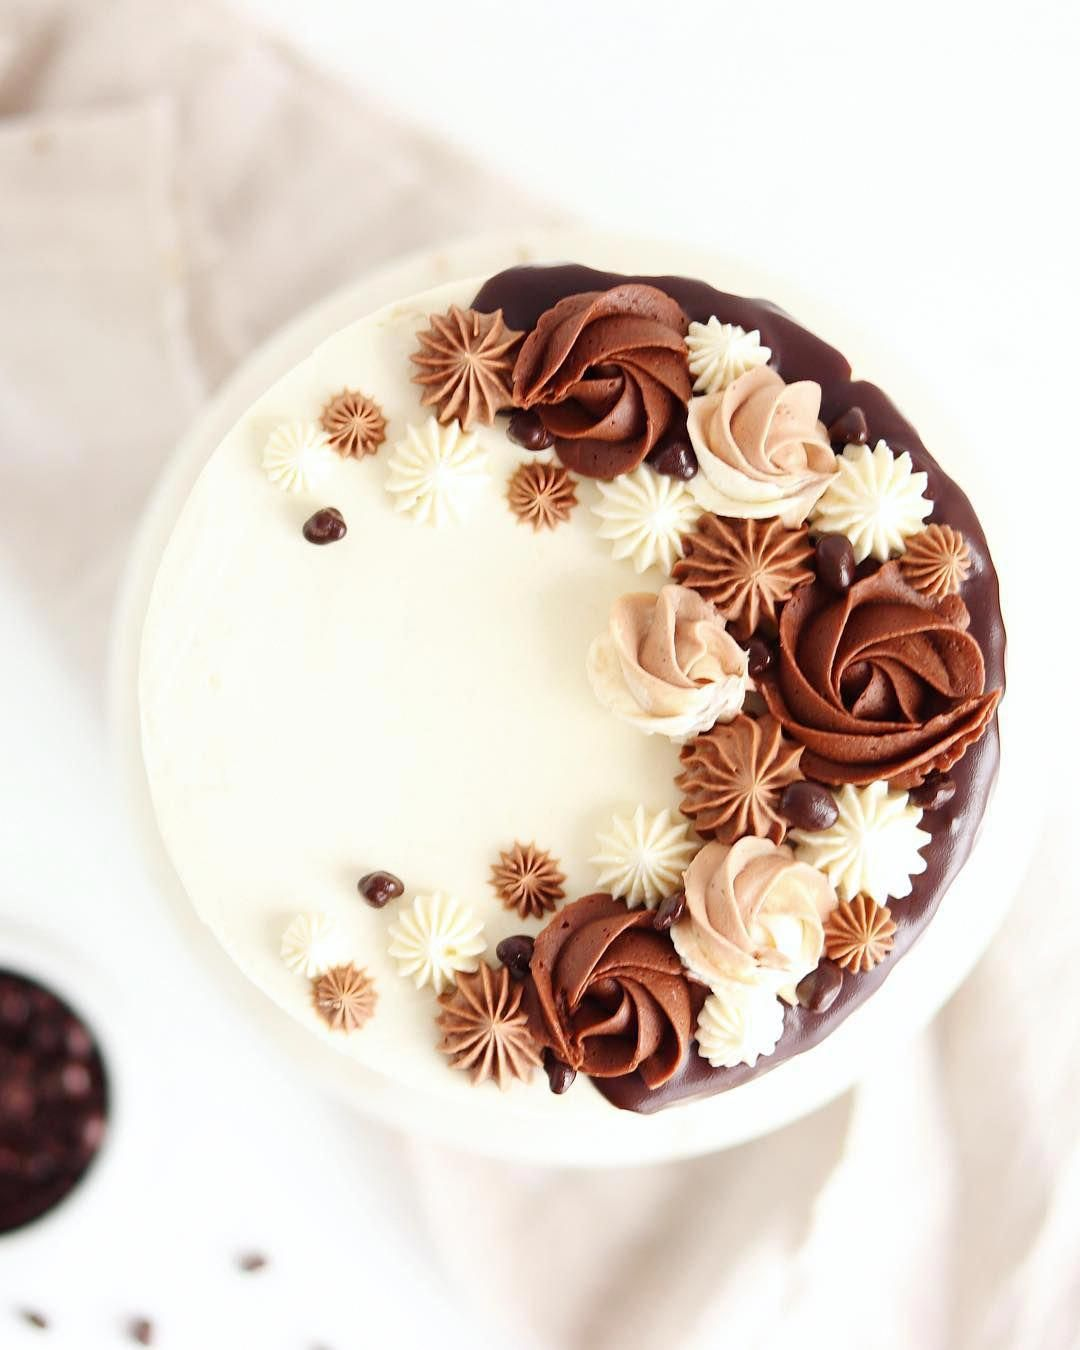 Hot Chocolate Thick Clean Eating Snacks Recipe Chocolate Cake Designs Chocolate Cake Decoration Chocolate Birthday Cake Decoration